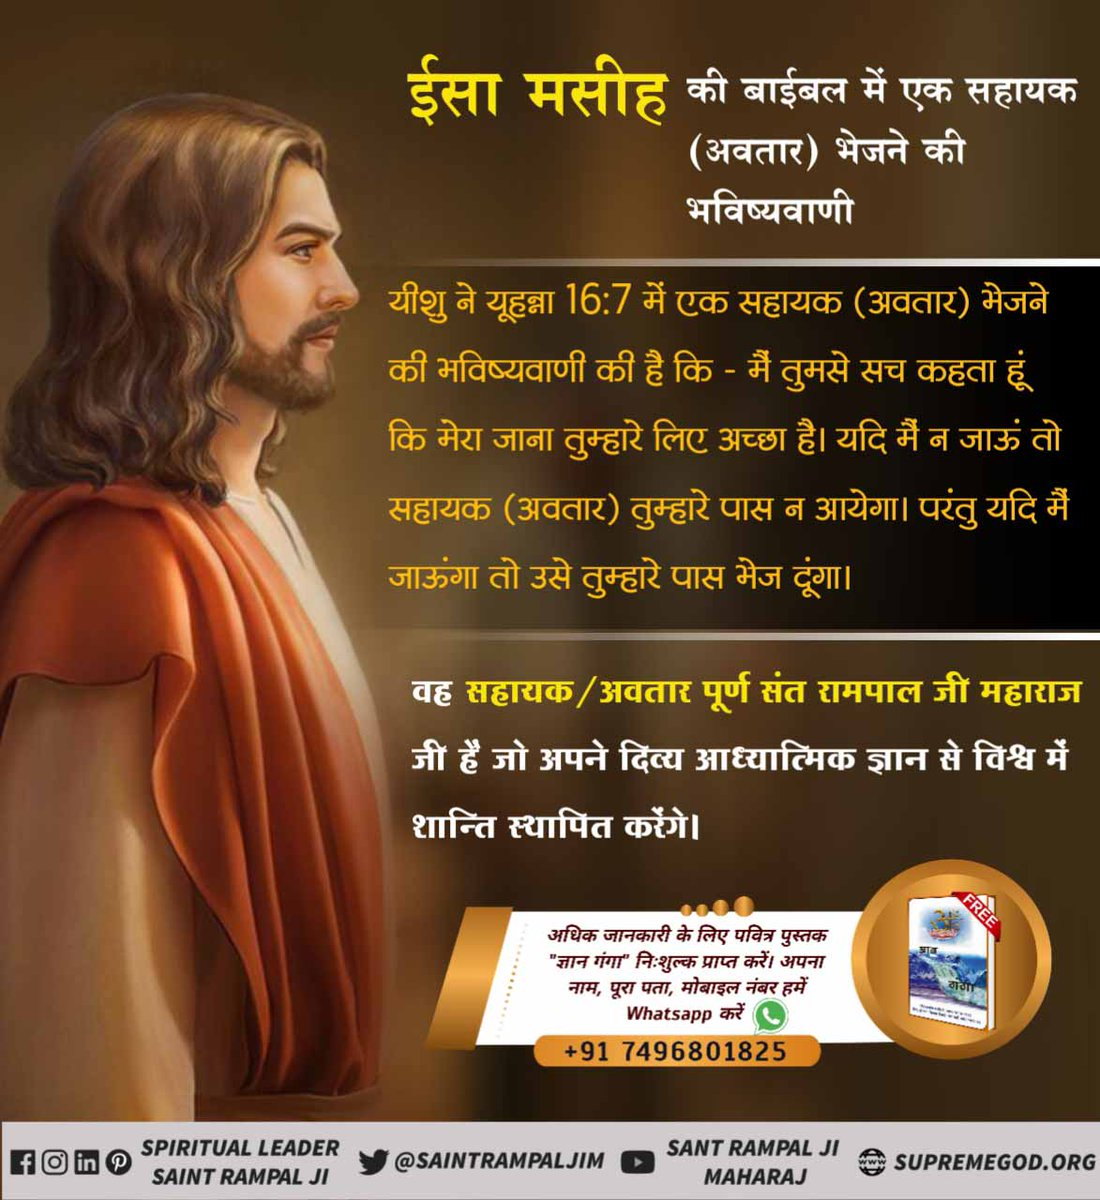 #GodMorningFriday In Satlok, every soul has an indestructible body, whereas on the Earth / Kaal Lok everything comes under destruction.